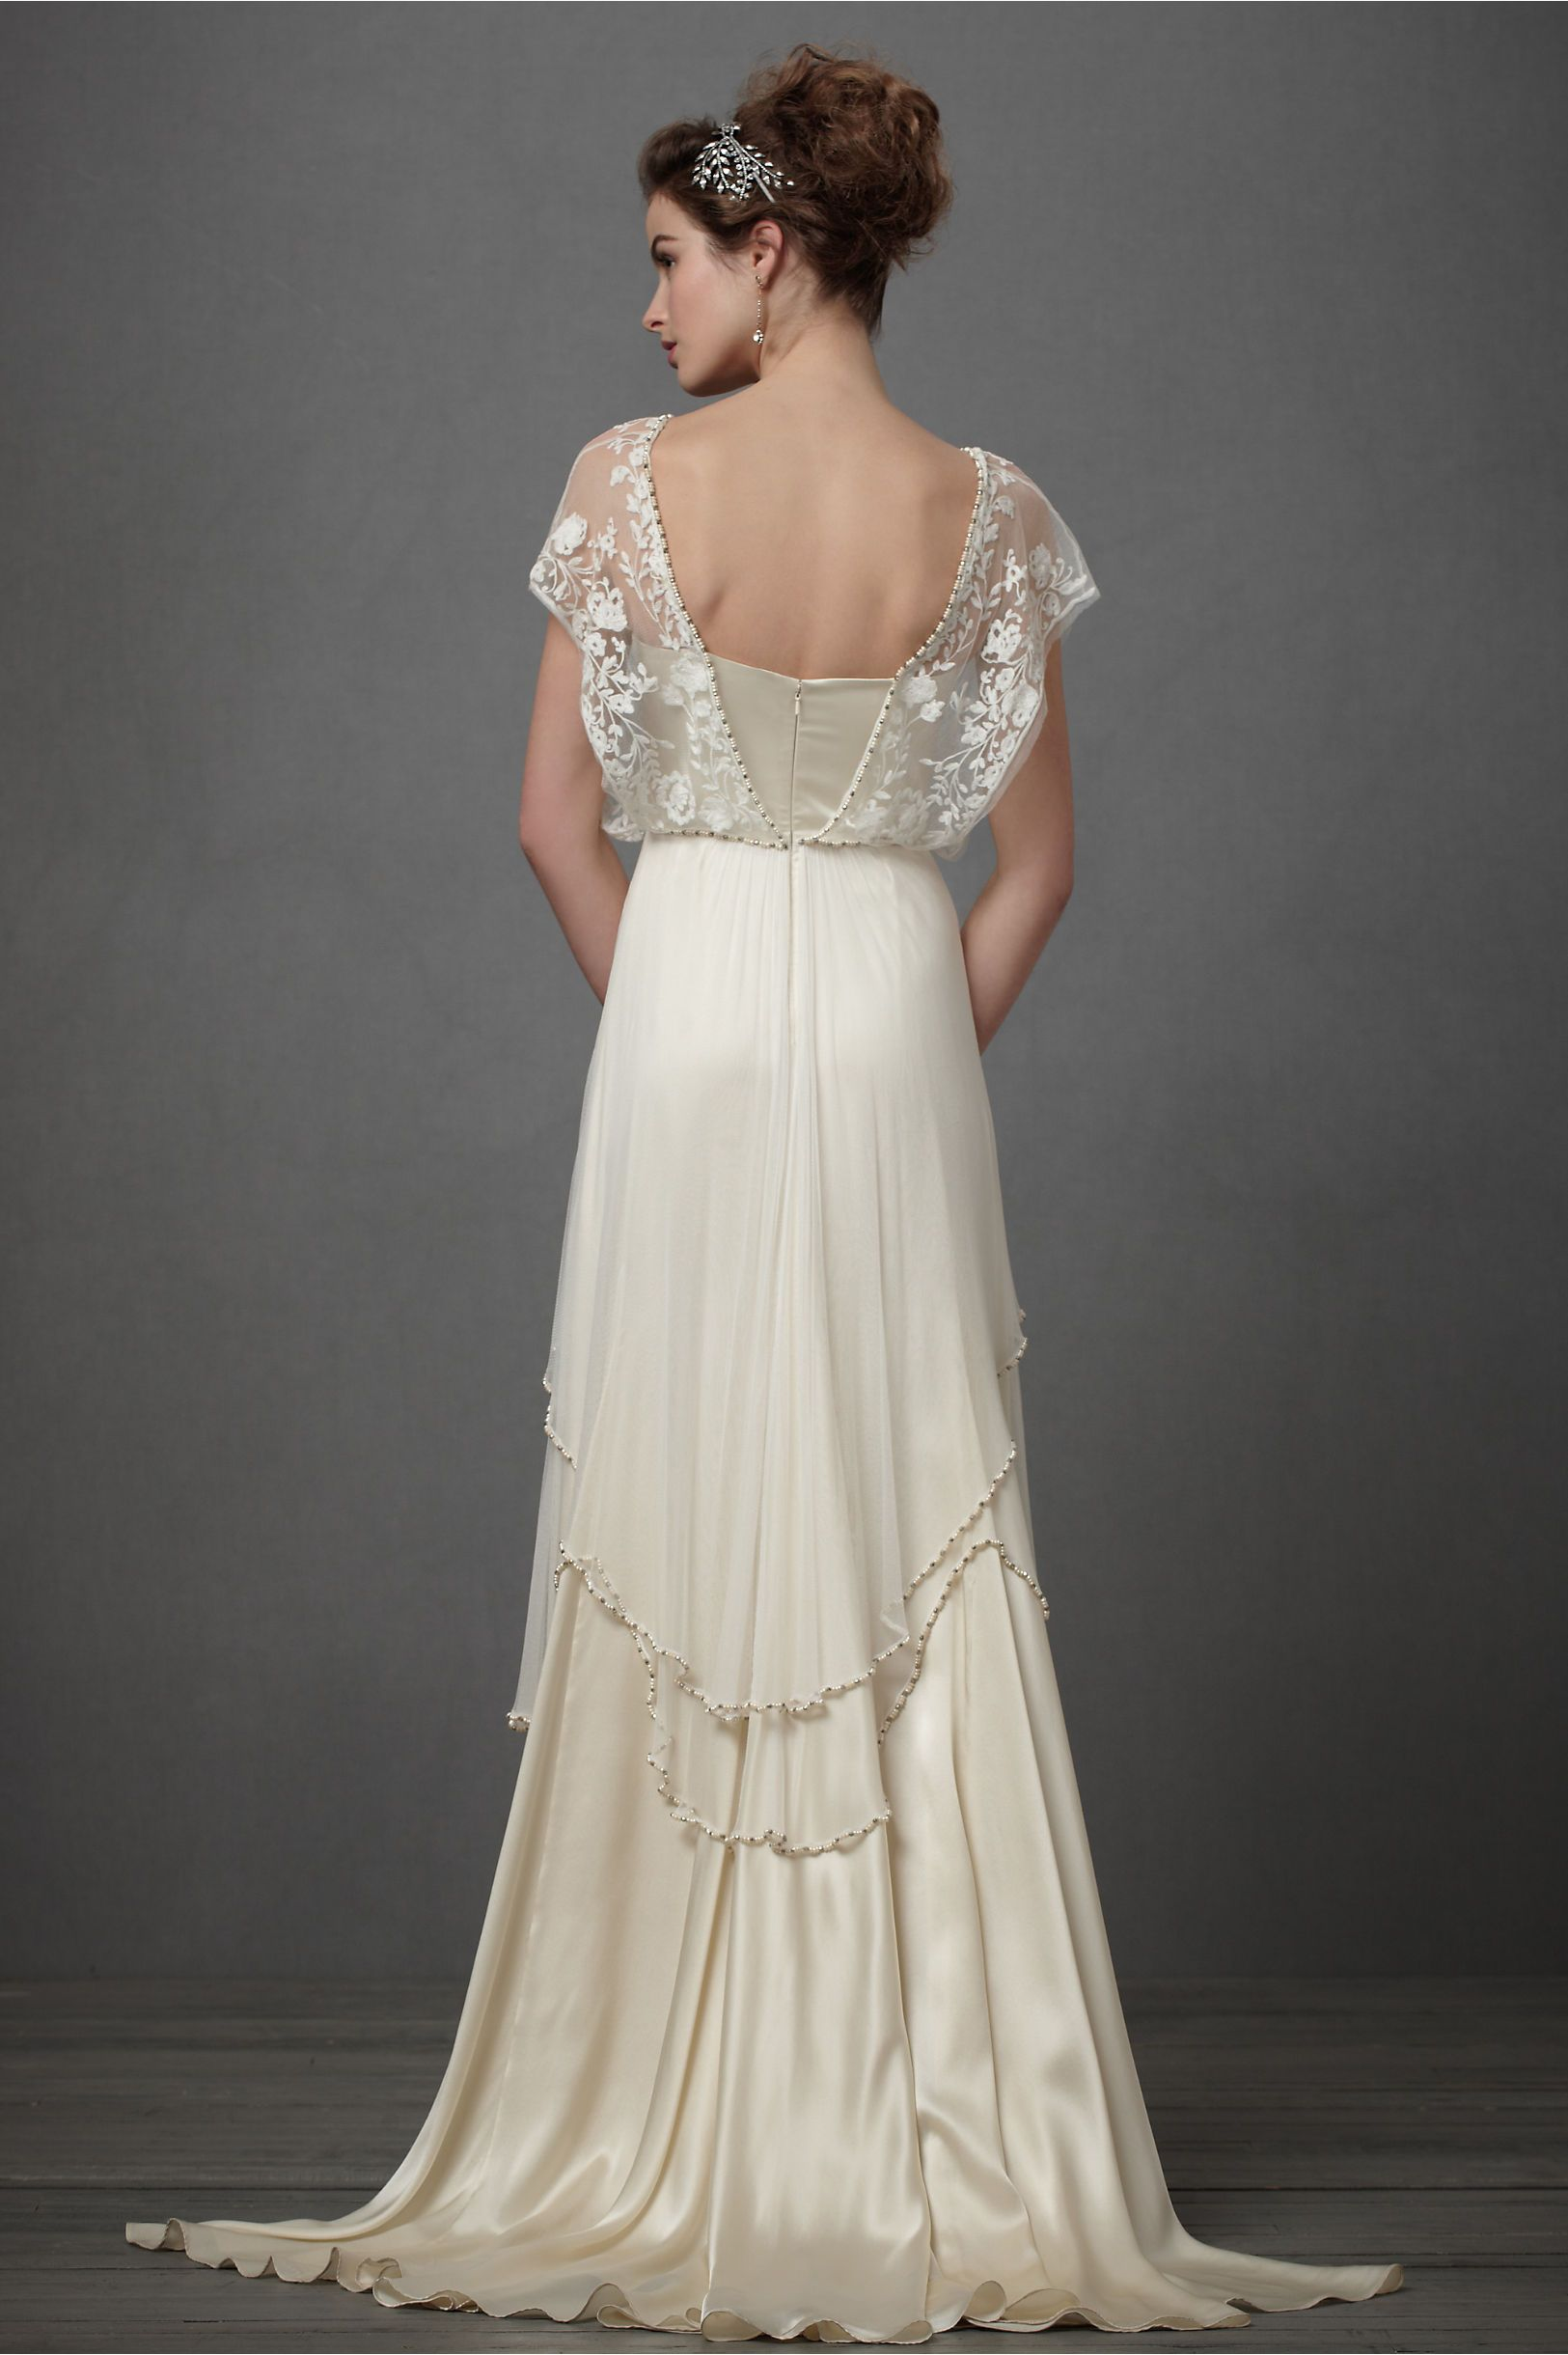 Catherine deane bhldn wedding stuff pinterest catherine